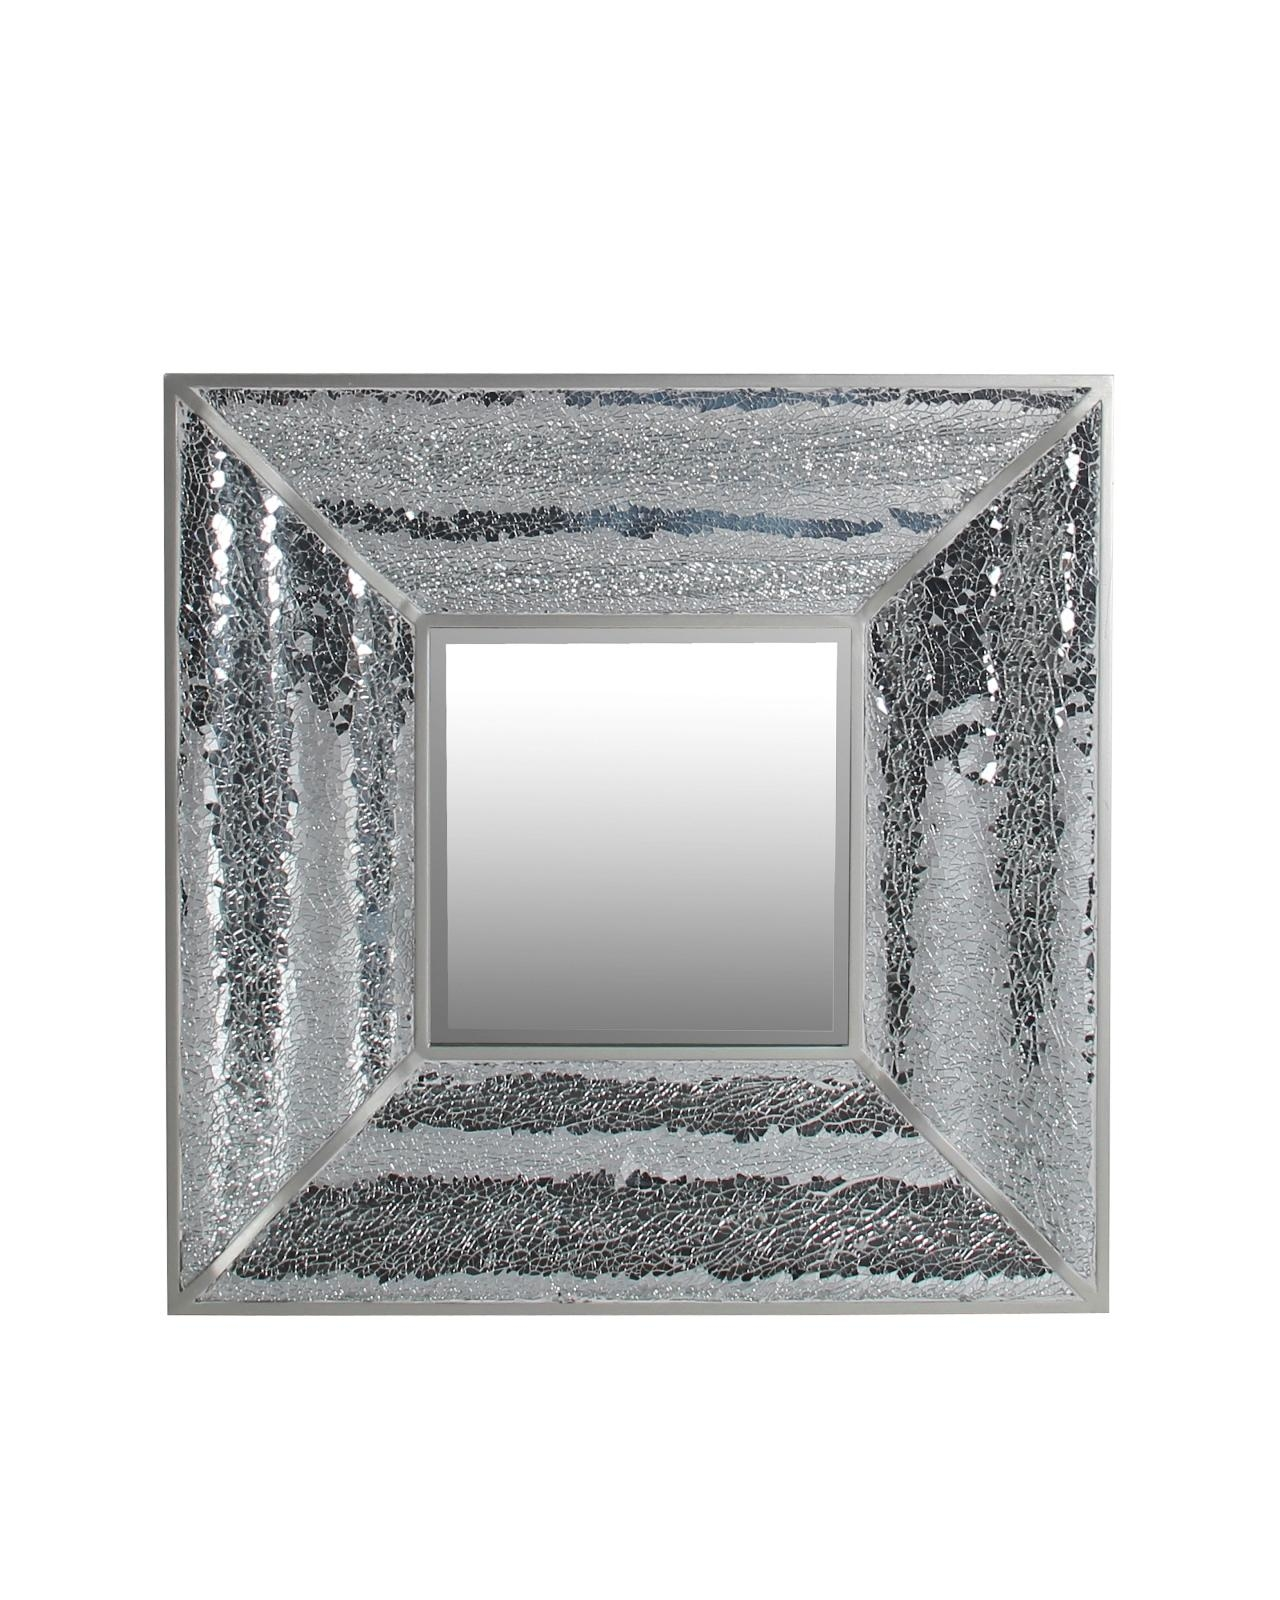 Darice Square Bevel Mirror – Walmart In Square Bevelled Mirror (Image 4 of 20)